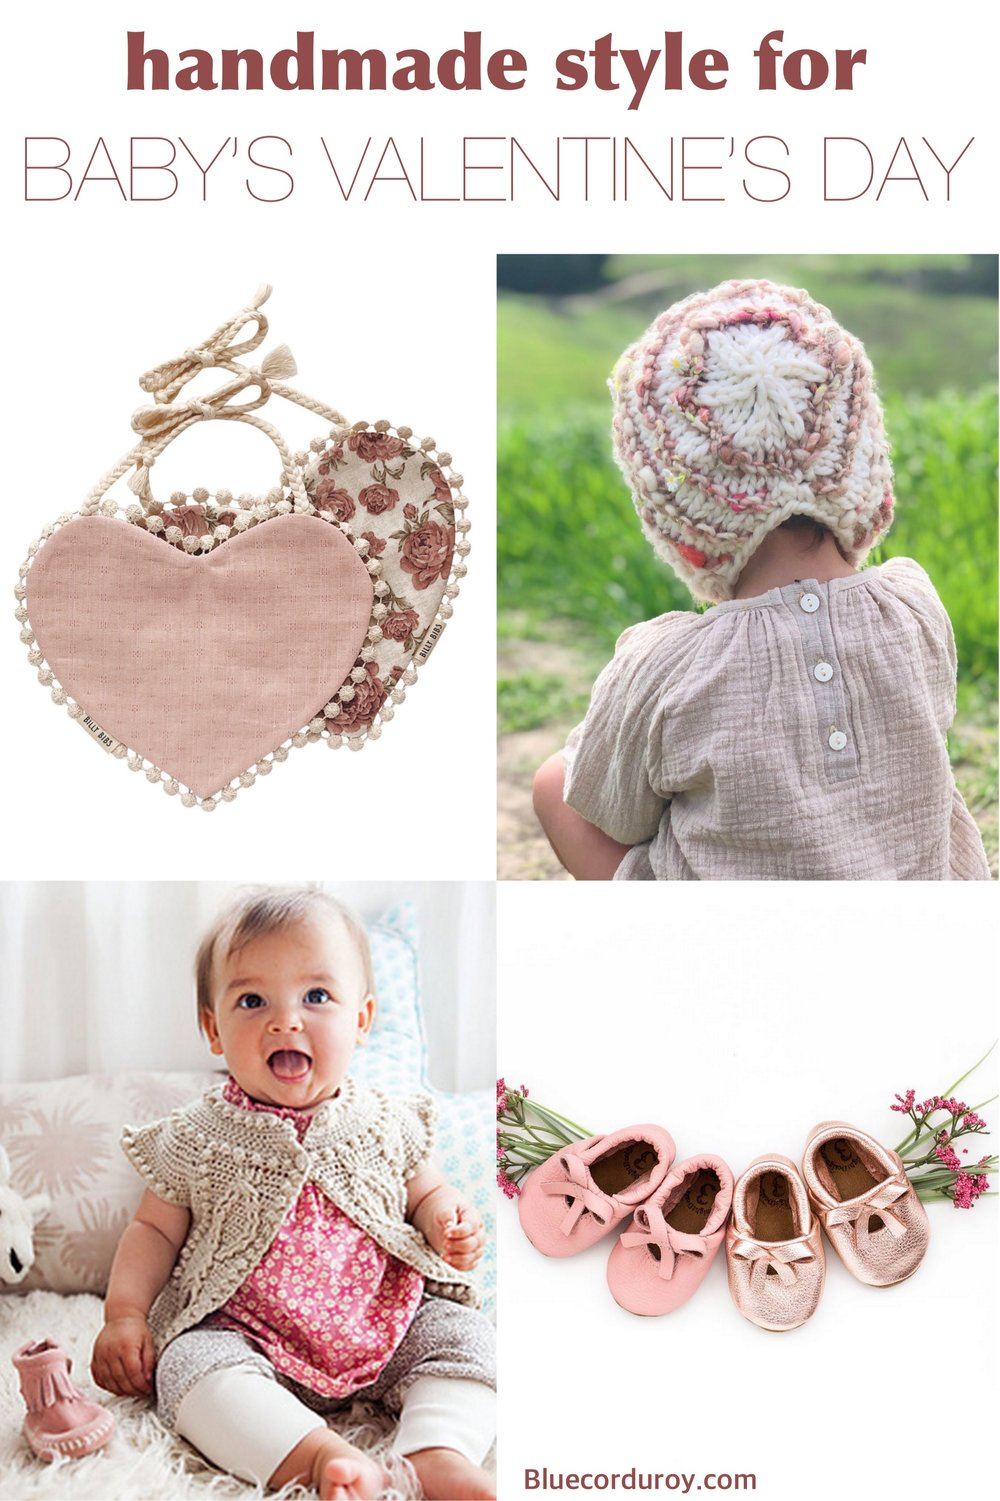 Handmade Valentine's Day Style for Baby